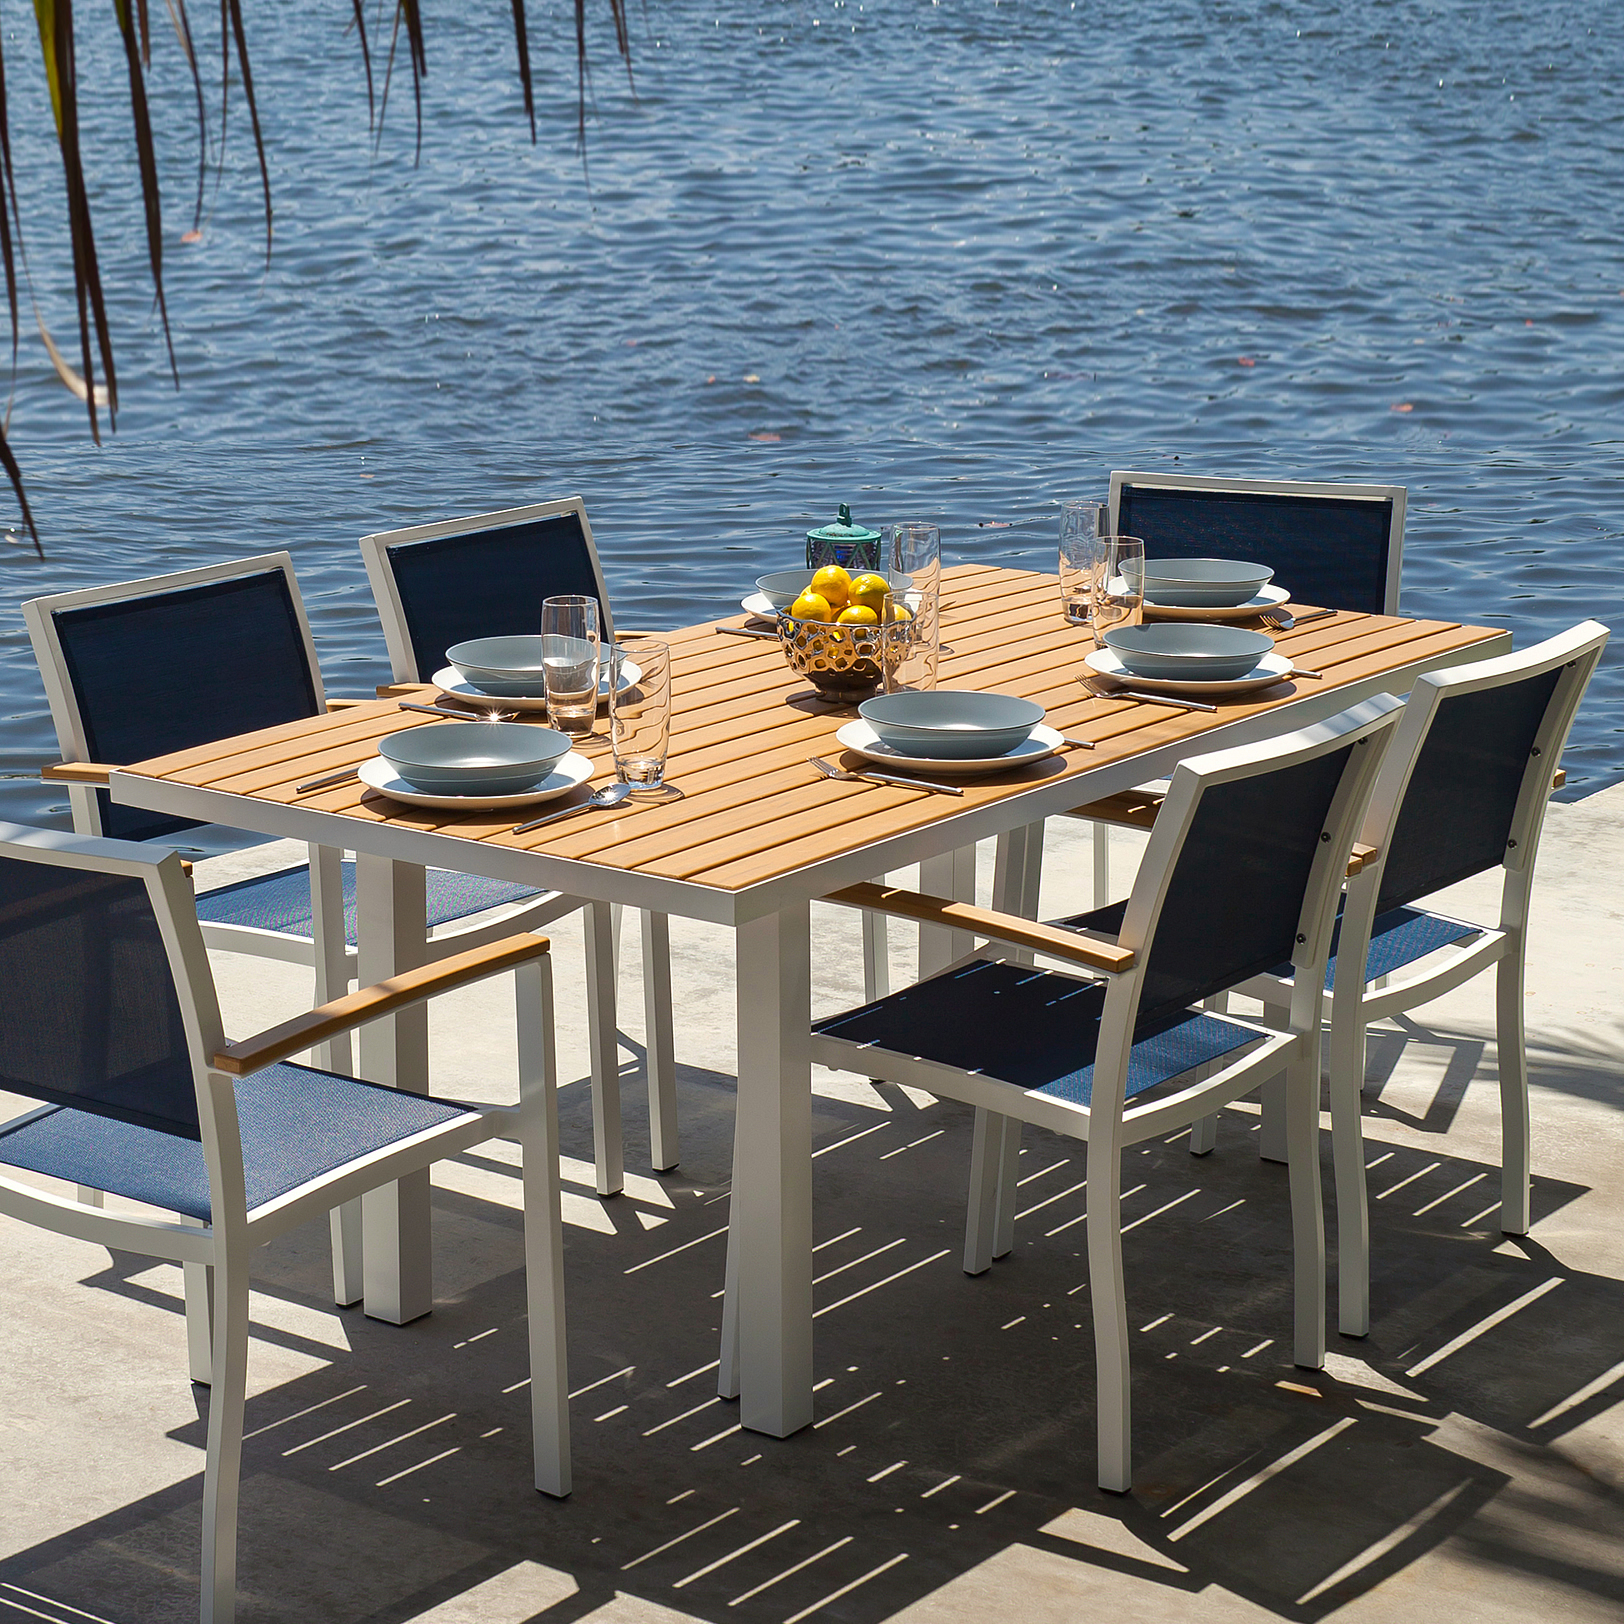 POLYWOOD Bayline 7 Pc. Dining Set   Bayline Collection   POLYWOOD® Outdoor  Furniture   Collections